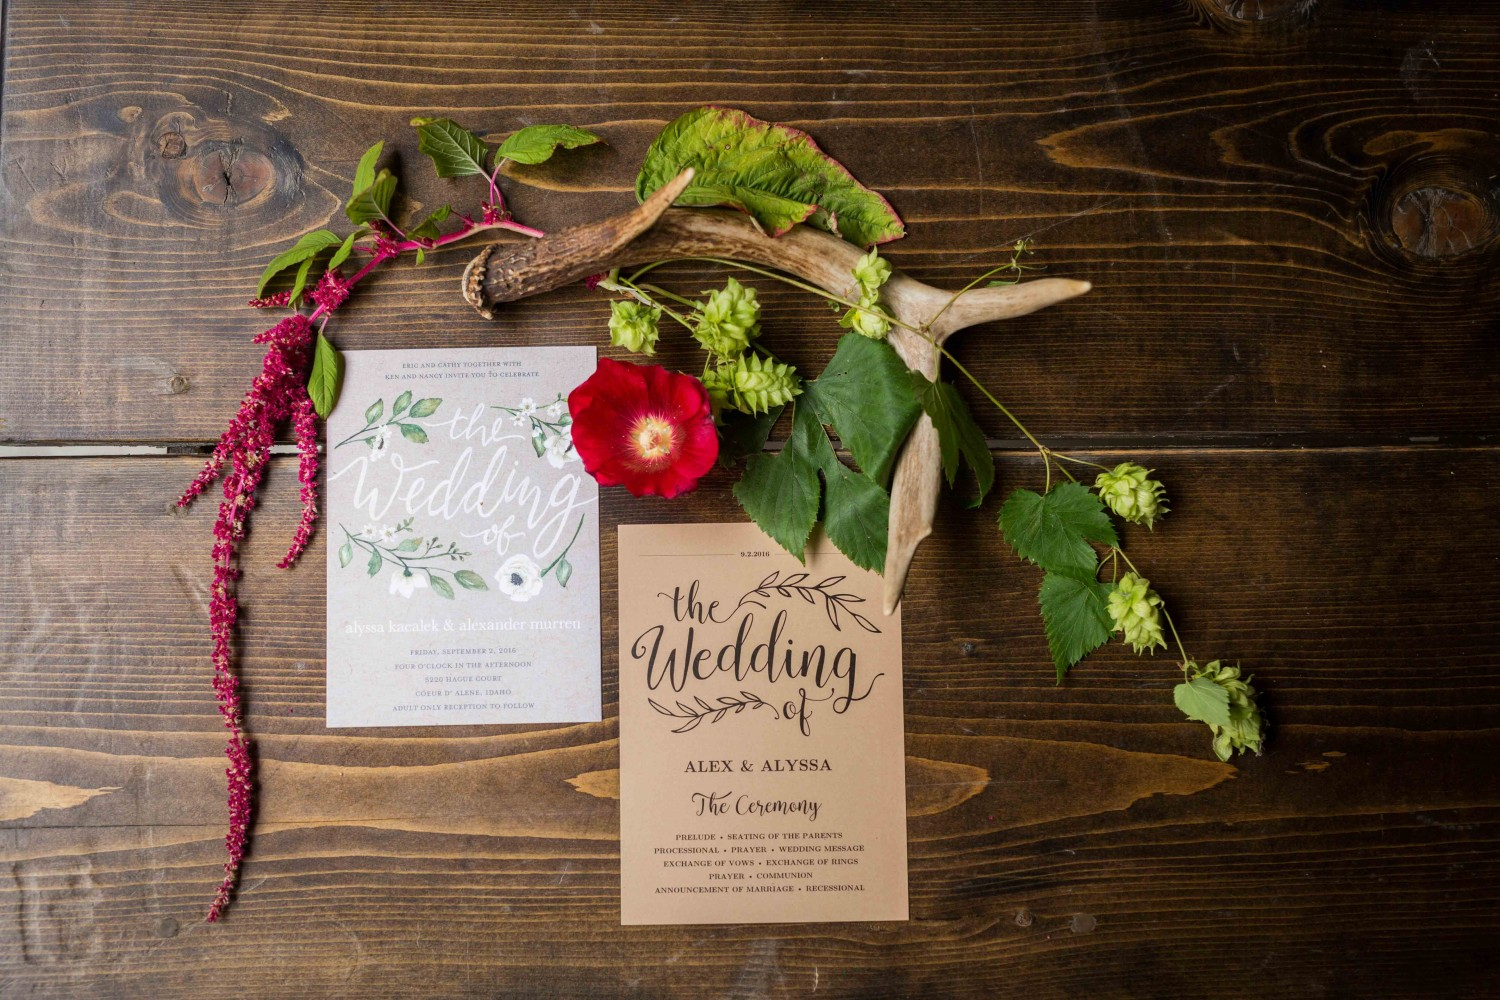 Invitations and wedding details. Incredible wedding just outside of Spokane Washington.